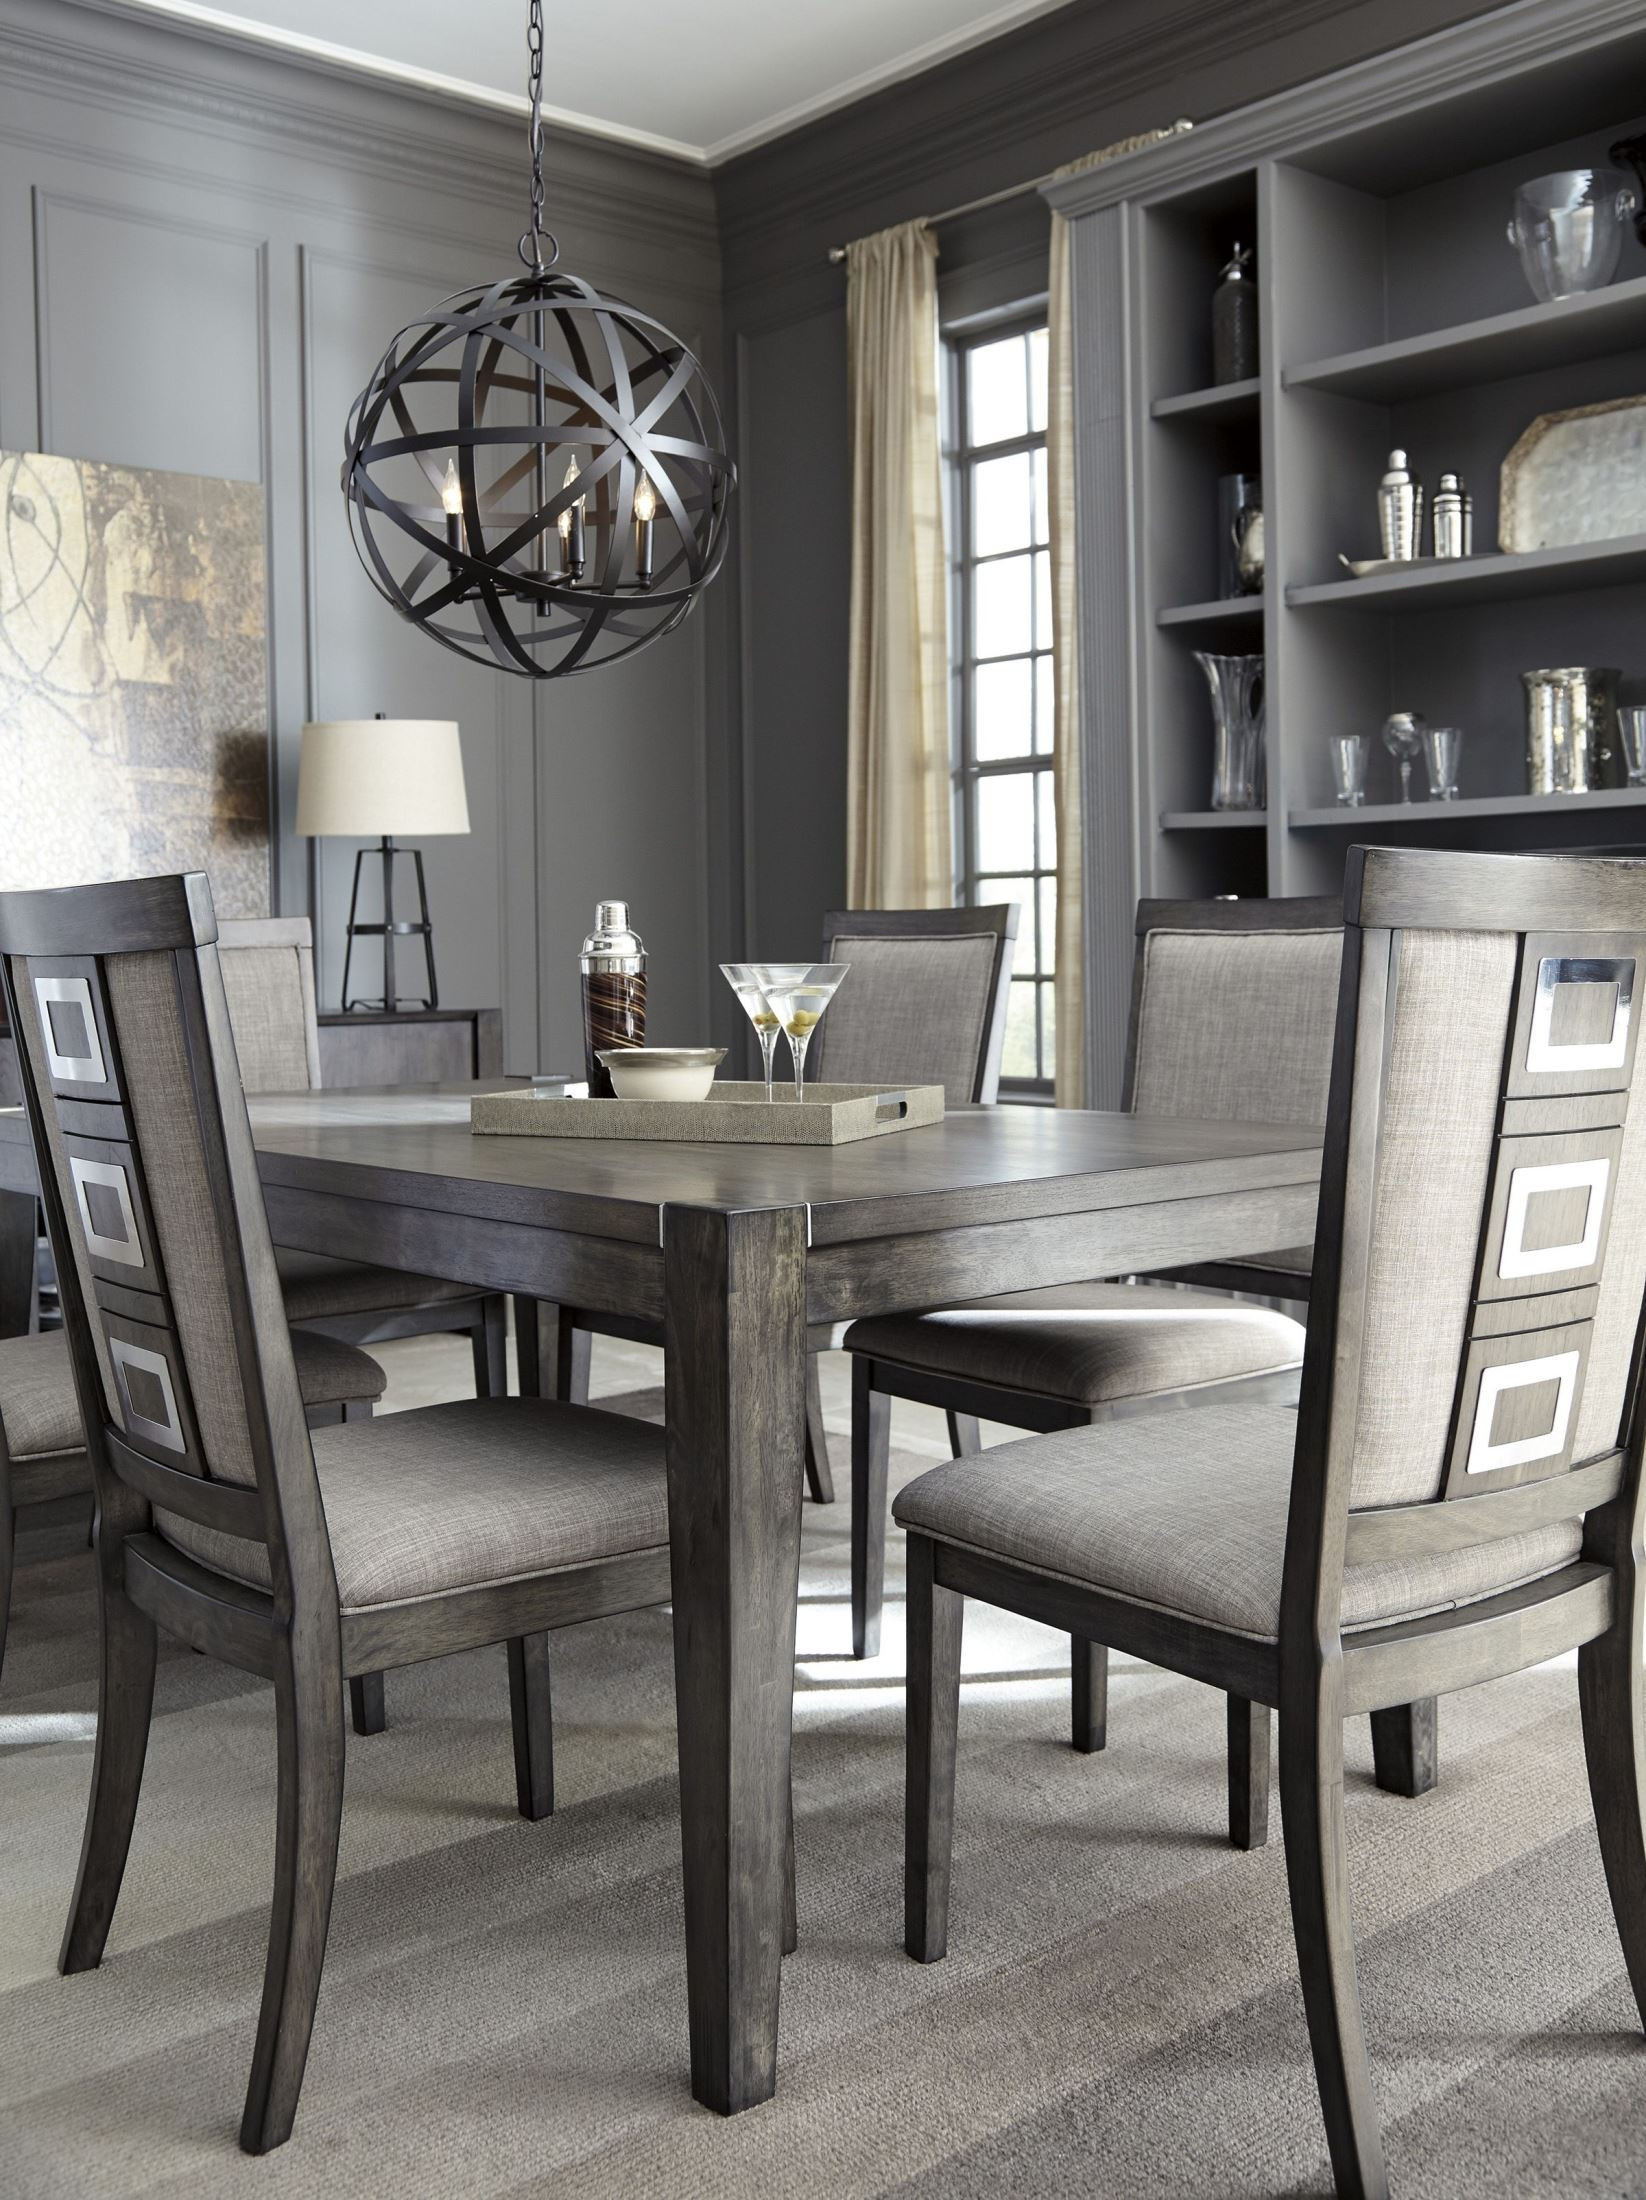 Best ideas about Gray Dining Table . Save or Pin Chadoni Gray Rectangular Extendable Dining Table from Now.